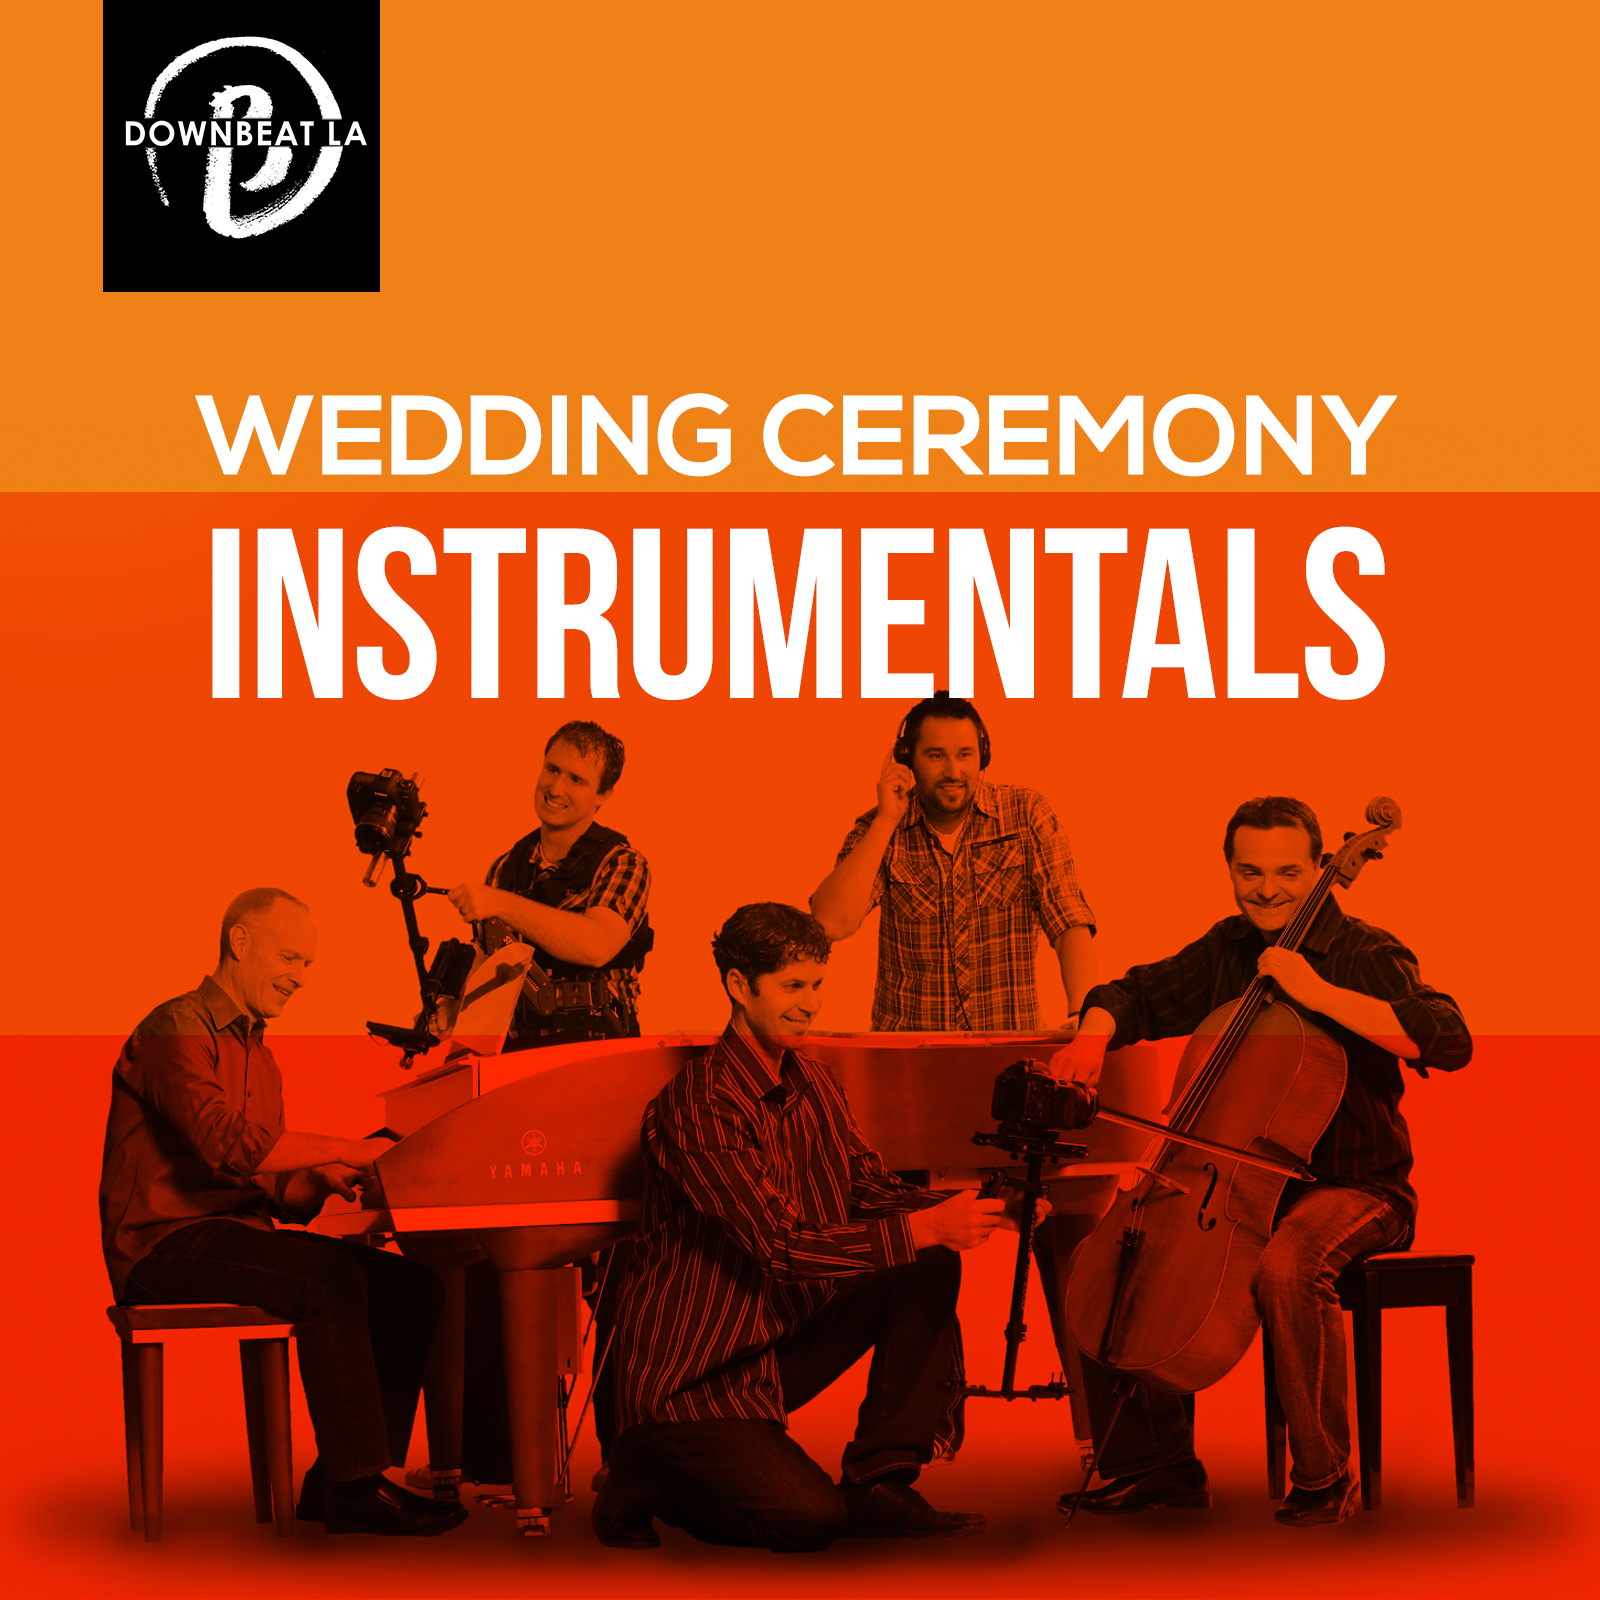 Wedding Ceremony Instrumentals.jpg